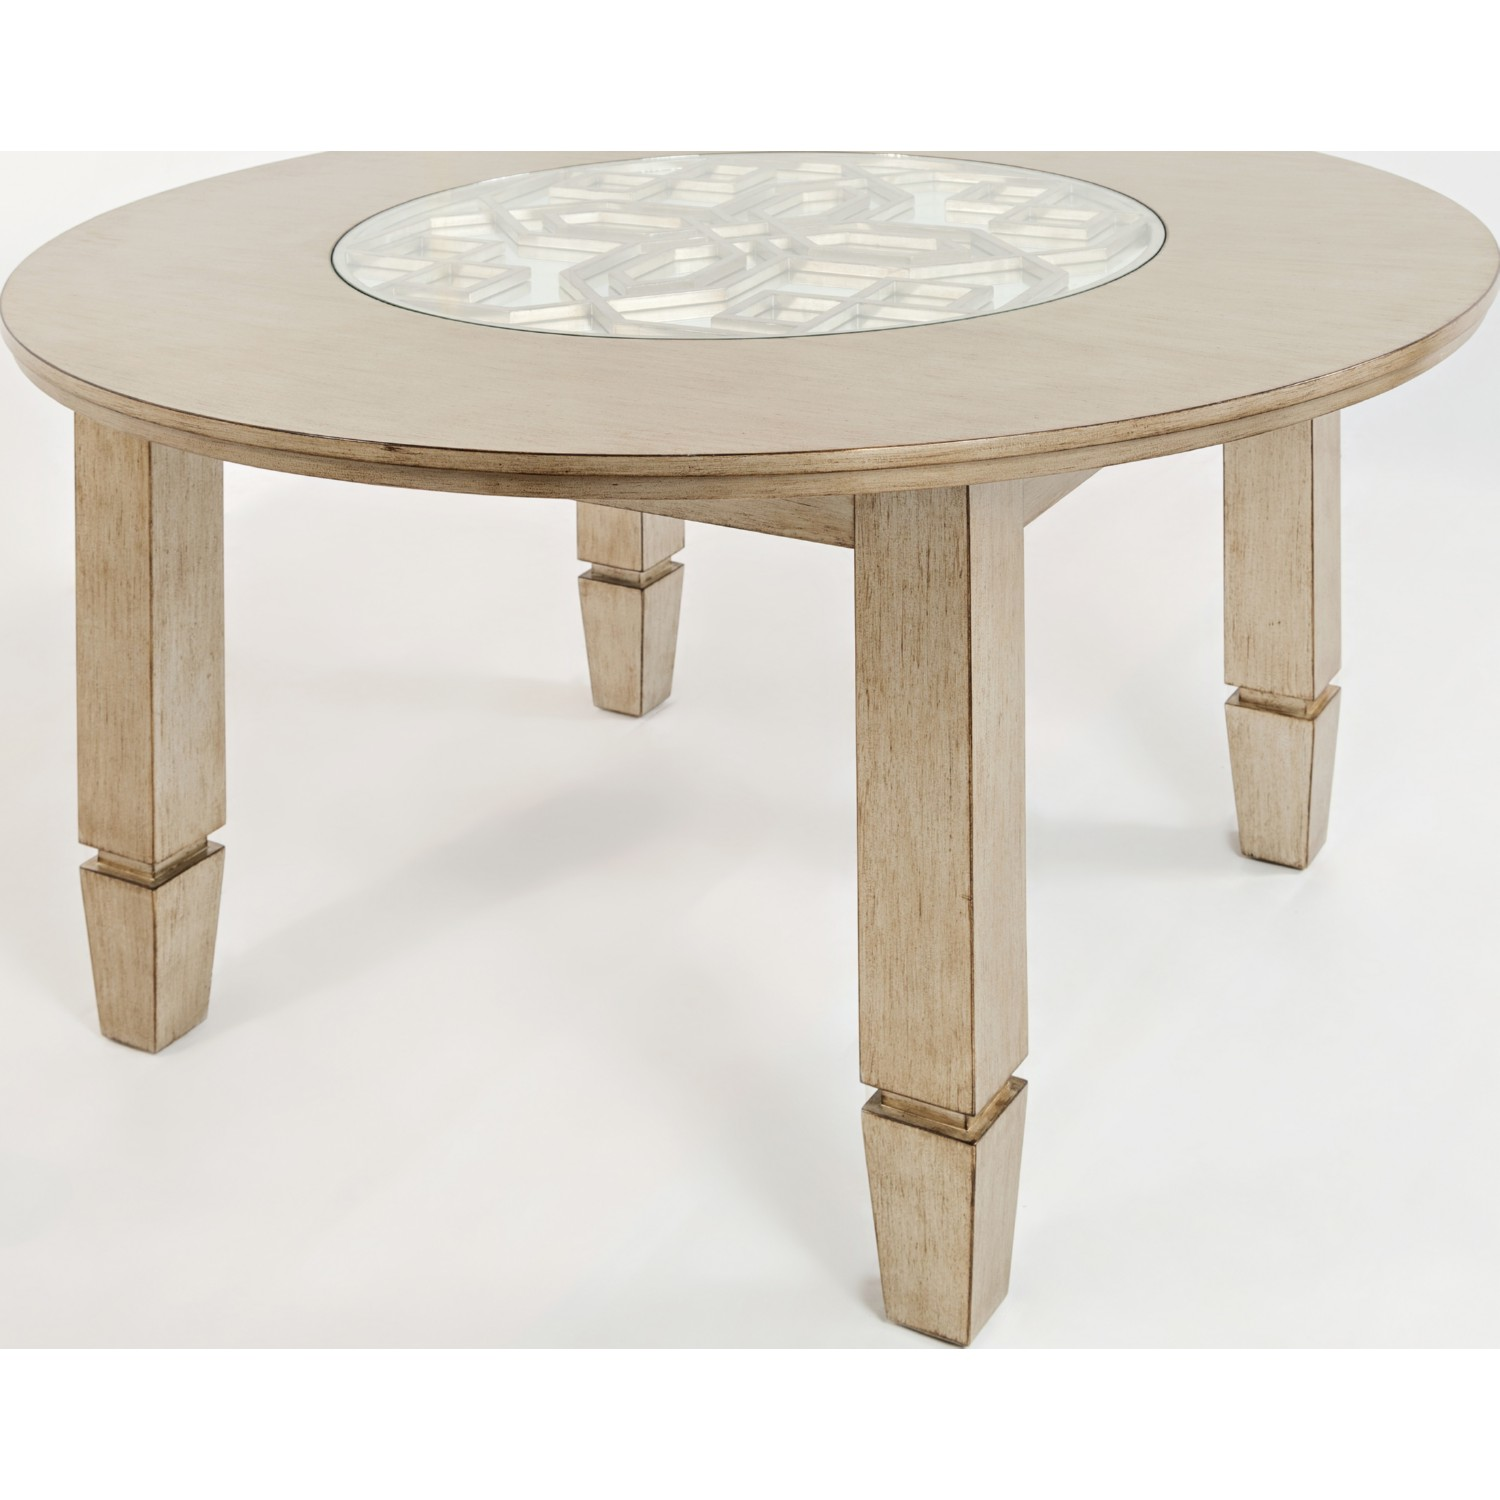 Casa Bella Round Dining Table In Vintage Silver W/ Mirror Inset Glass Top